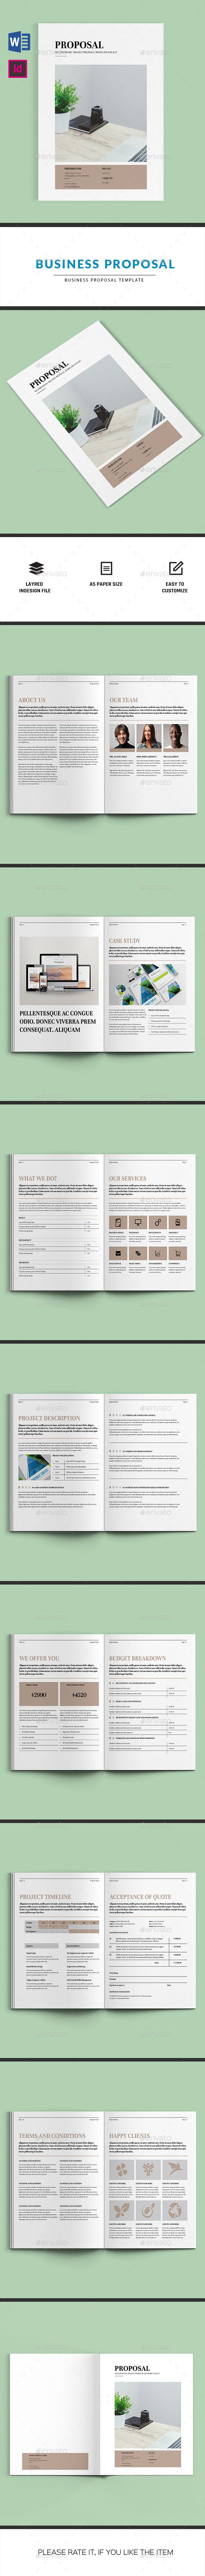 Business Proposal | Indesign & MS Word Template | Editorial y ...